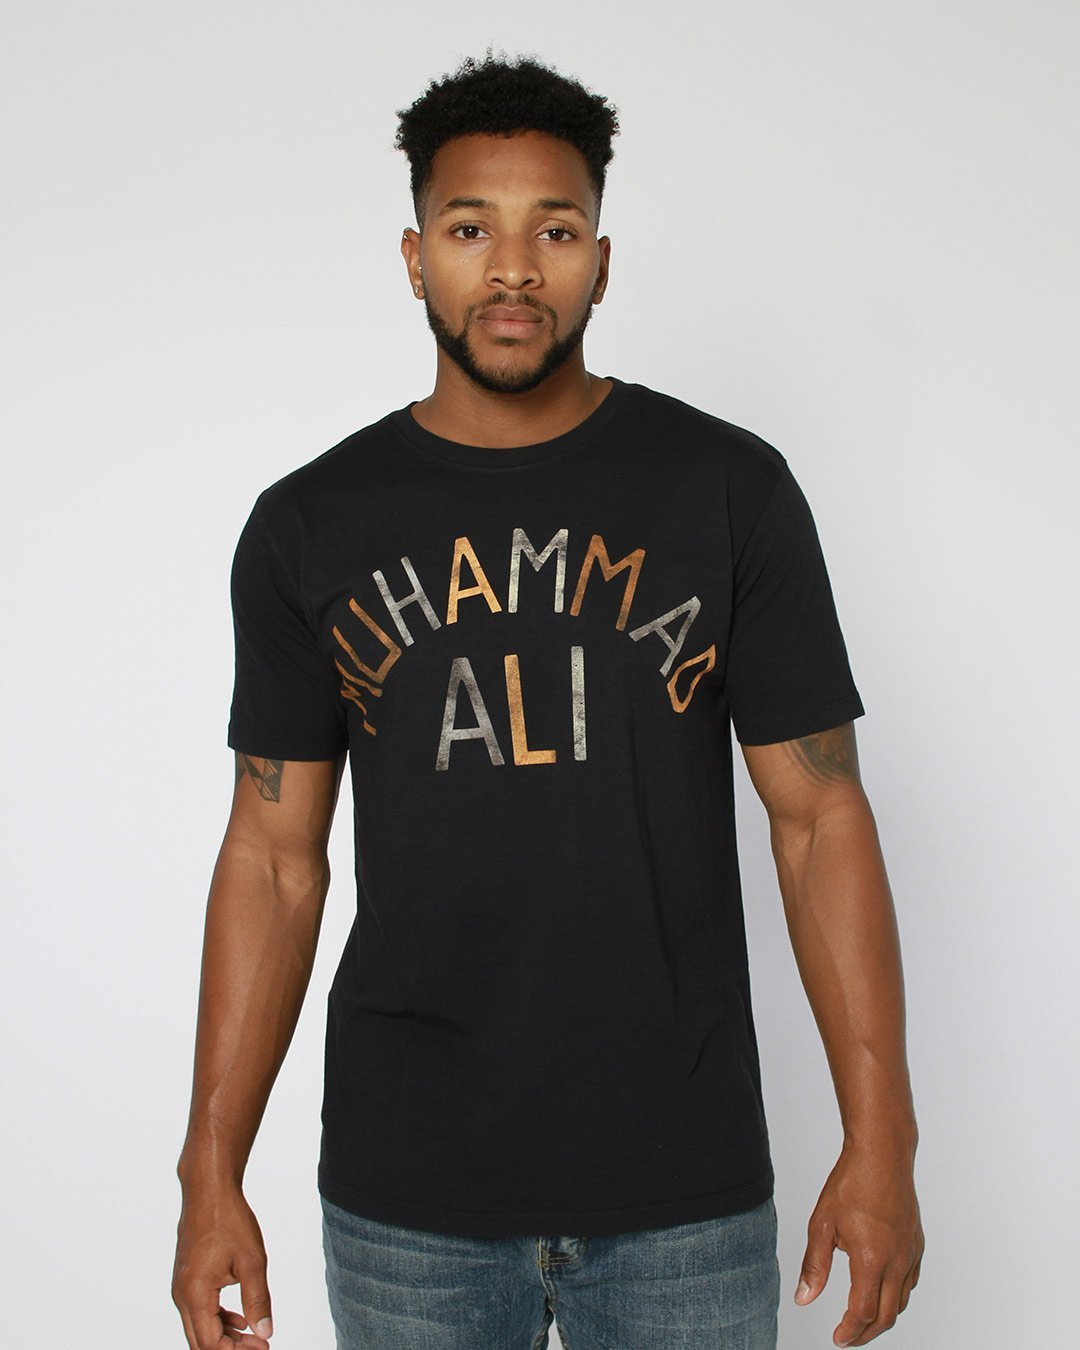 Ali Rumble Africa '74 Tee - Roots of Inc dba Roots of Fight